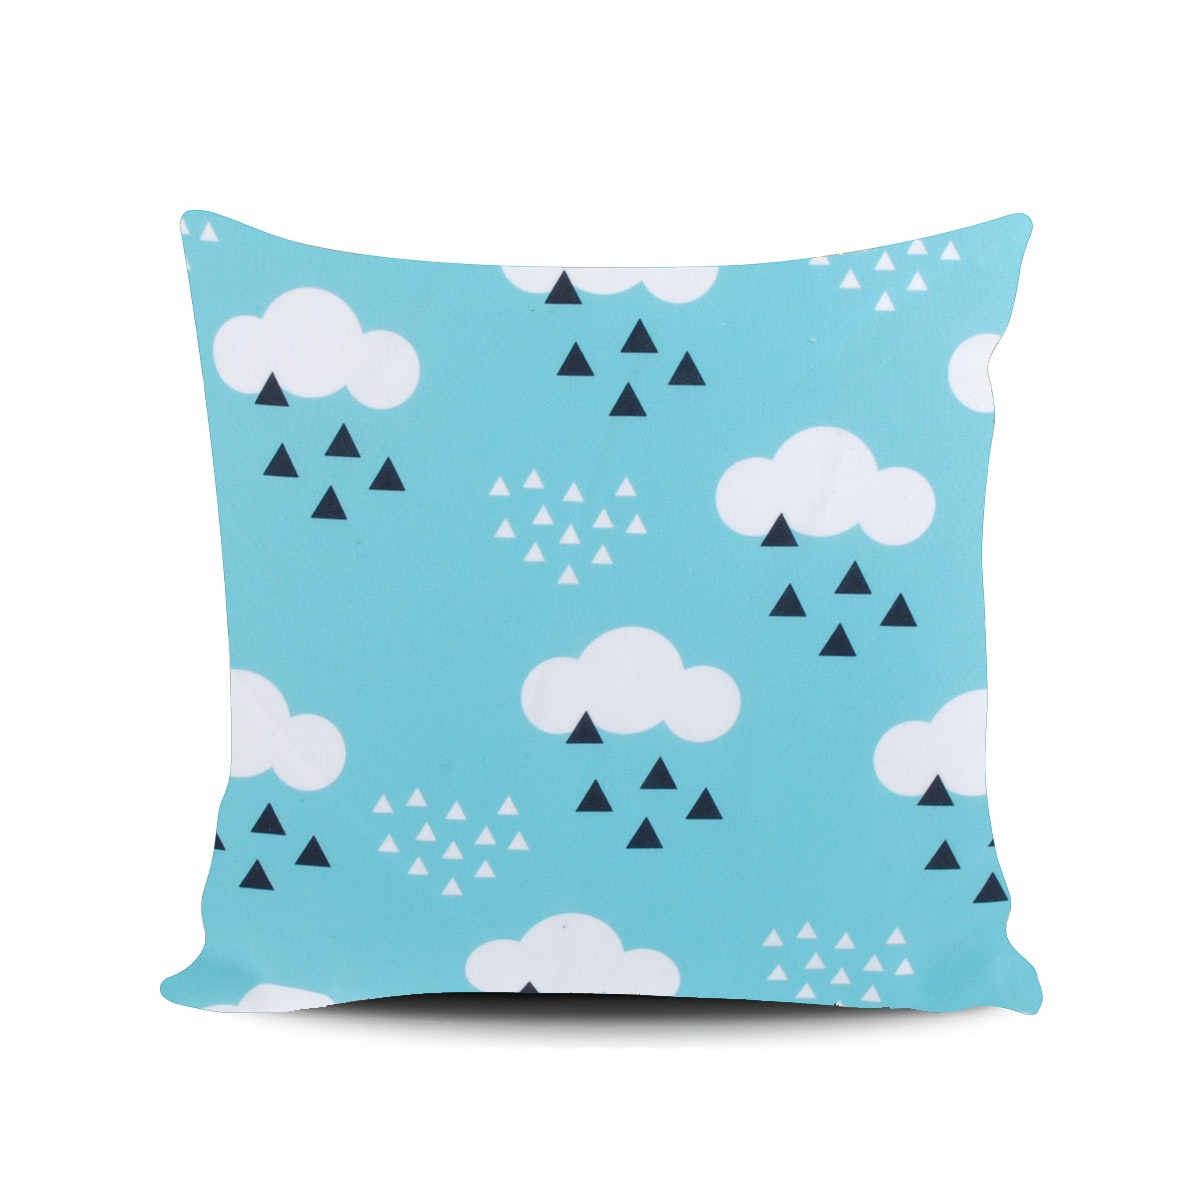 Myka_kids Tosca Clouds Cushion Cover 40x40